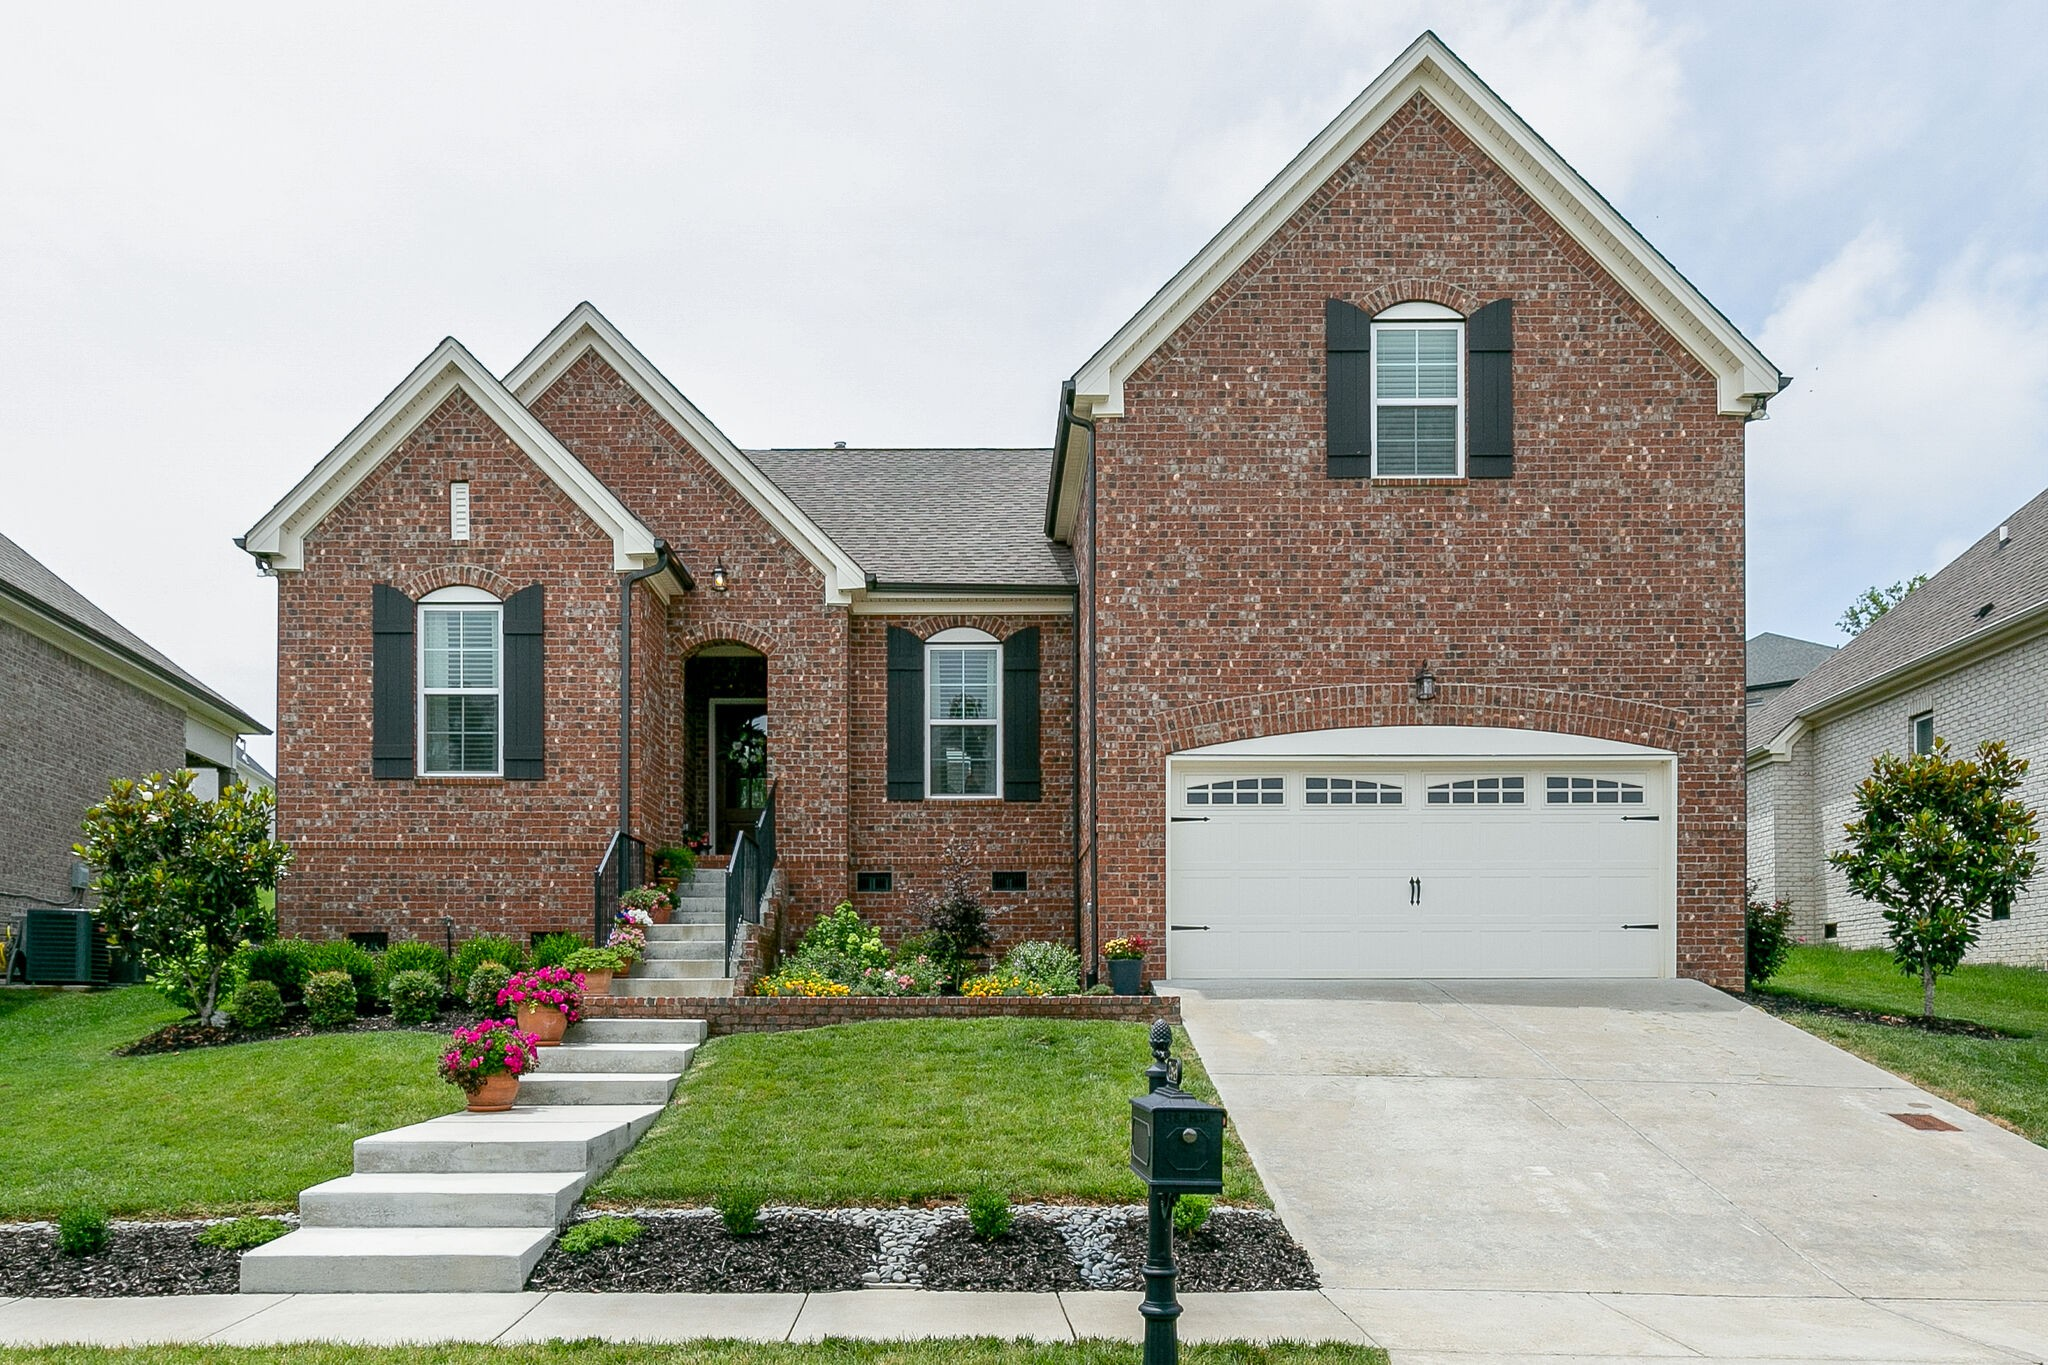 2649 Paddock Park Dr Property Photo - Thompsons Station, TN real estate listing